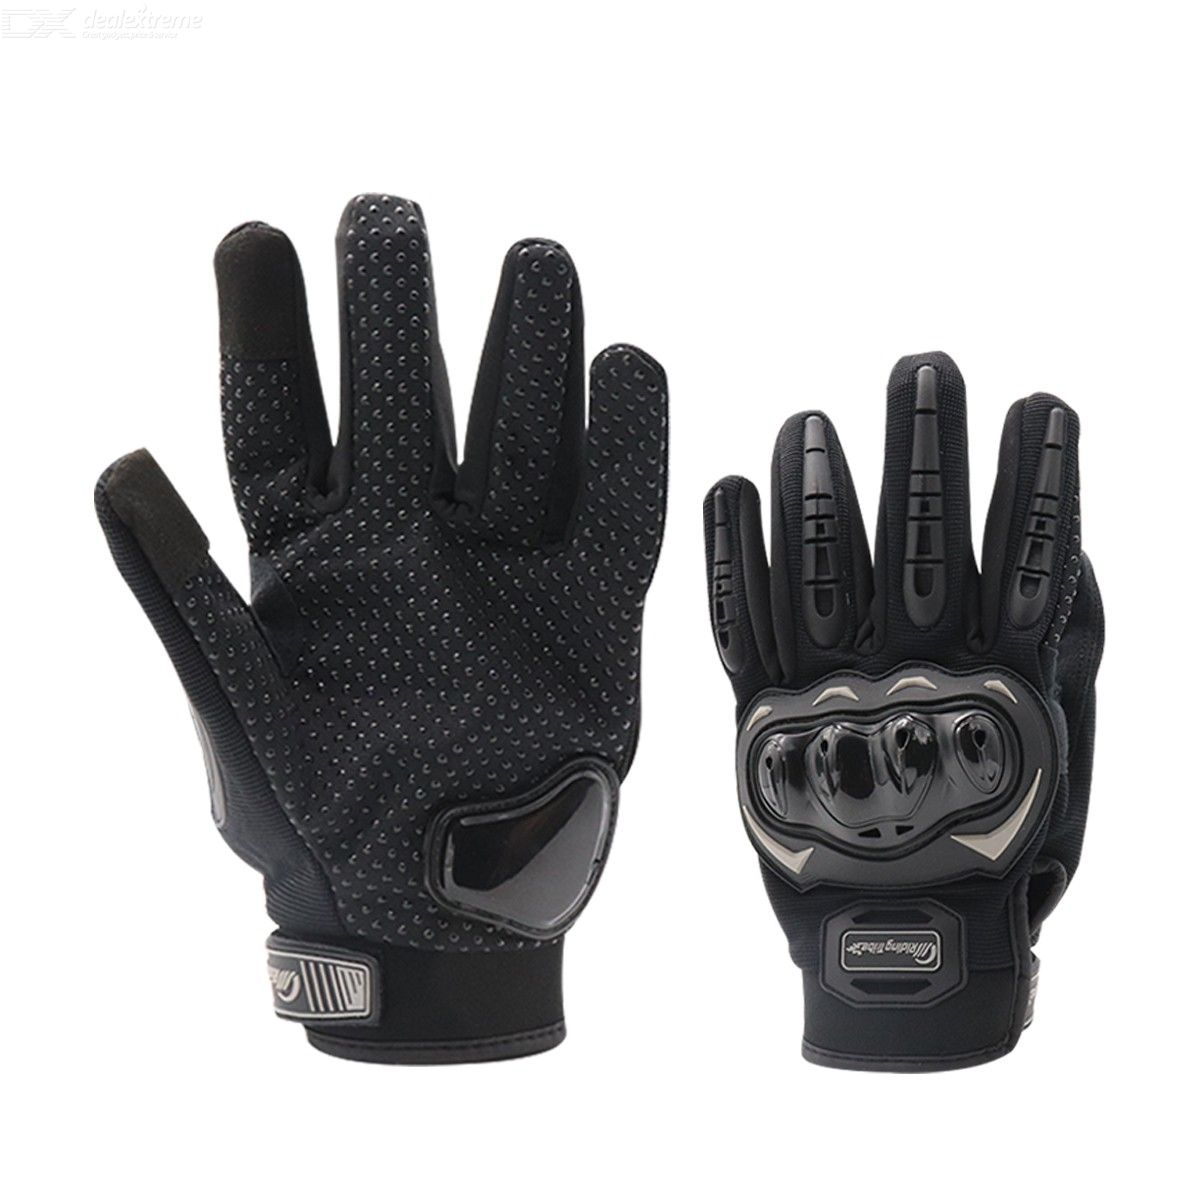 MP4308  Motorcycle Cycling Glove Touch Screen Waterproof Cold-proof Four Seasons Used  Glove